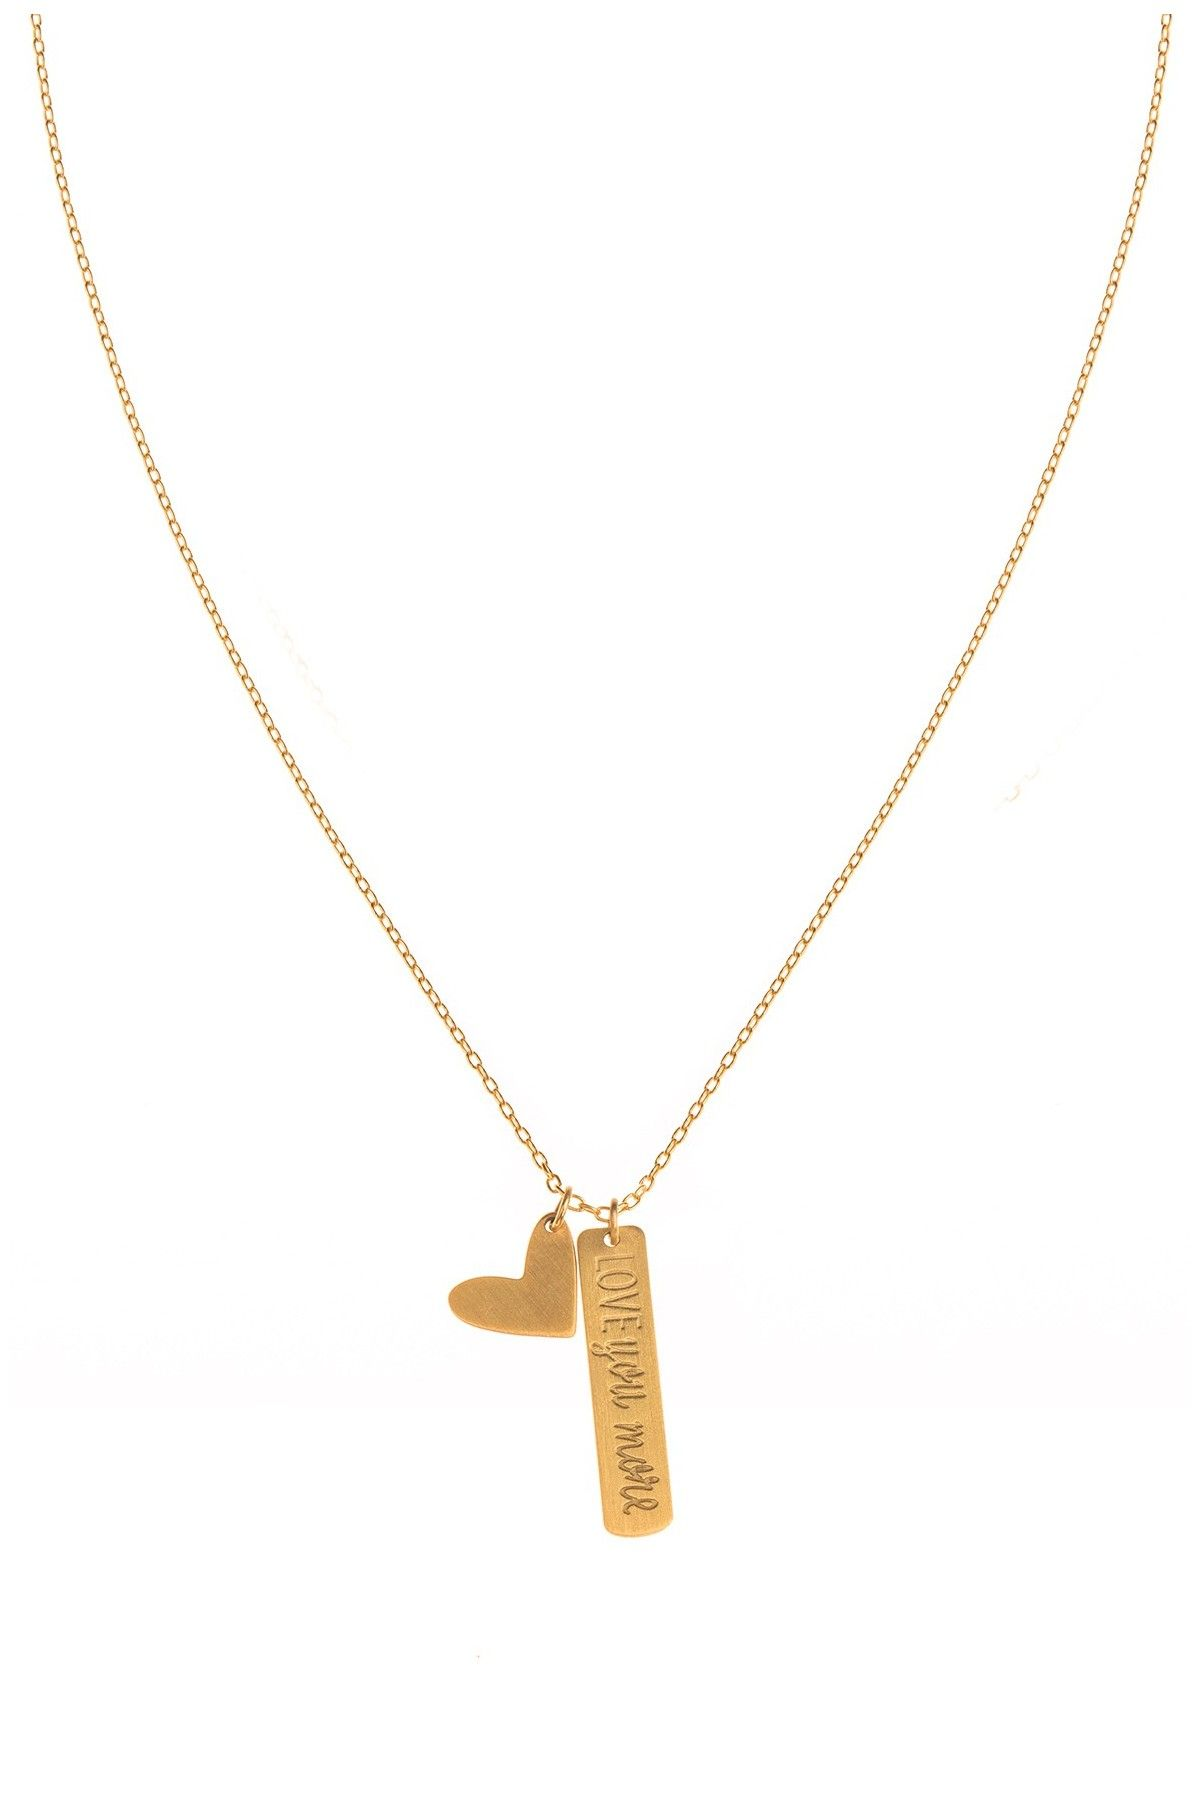 Personalizaded Love Necklace